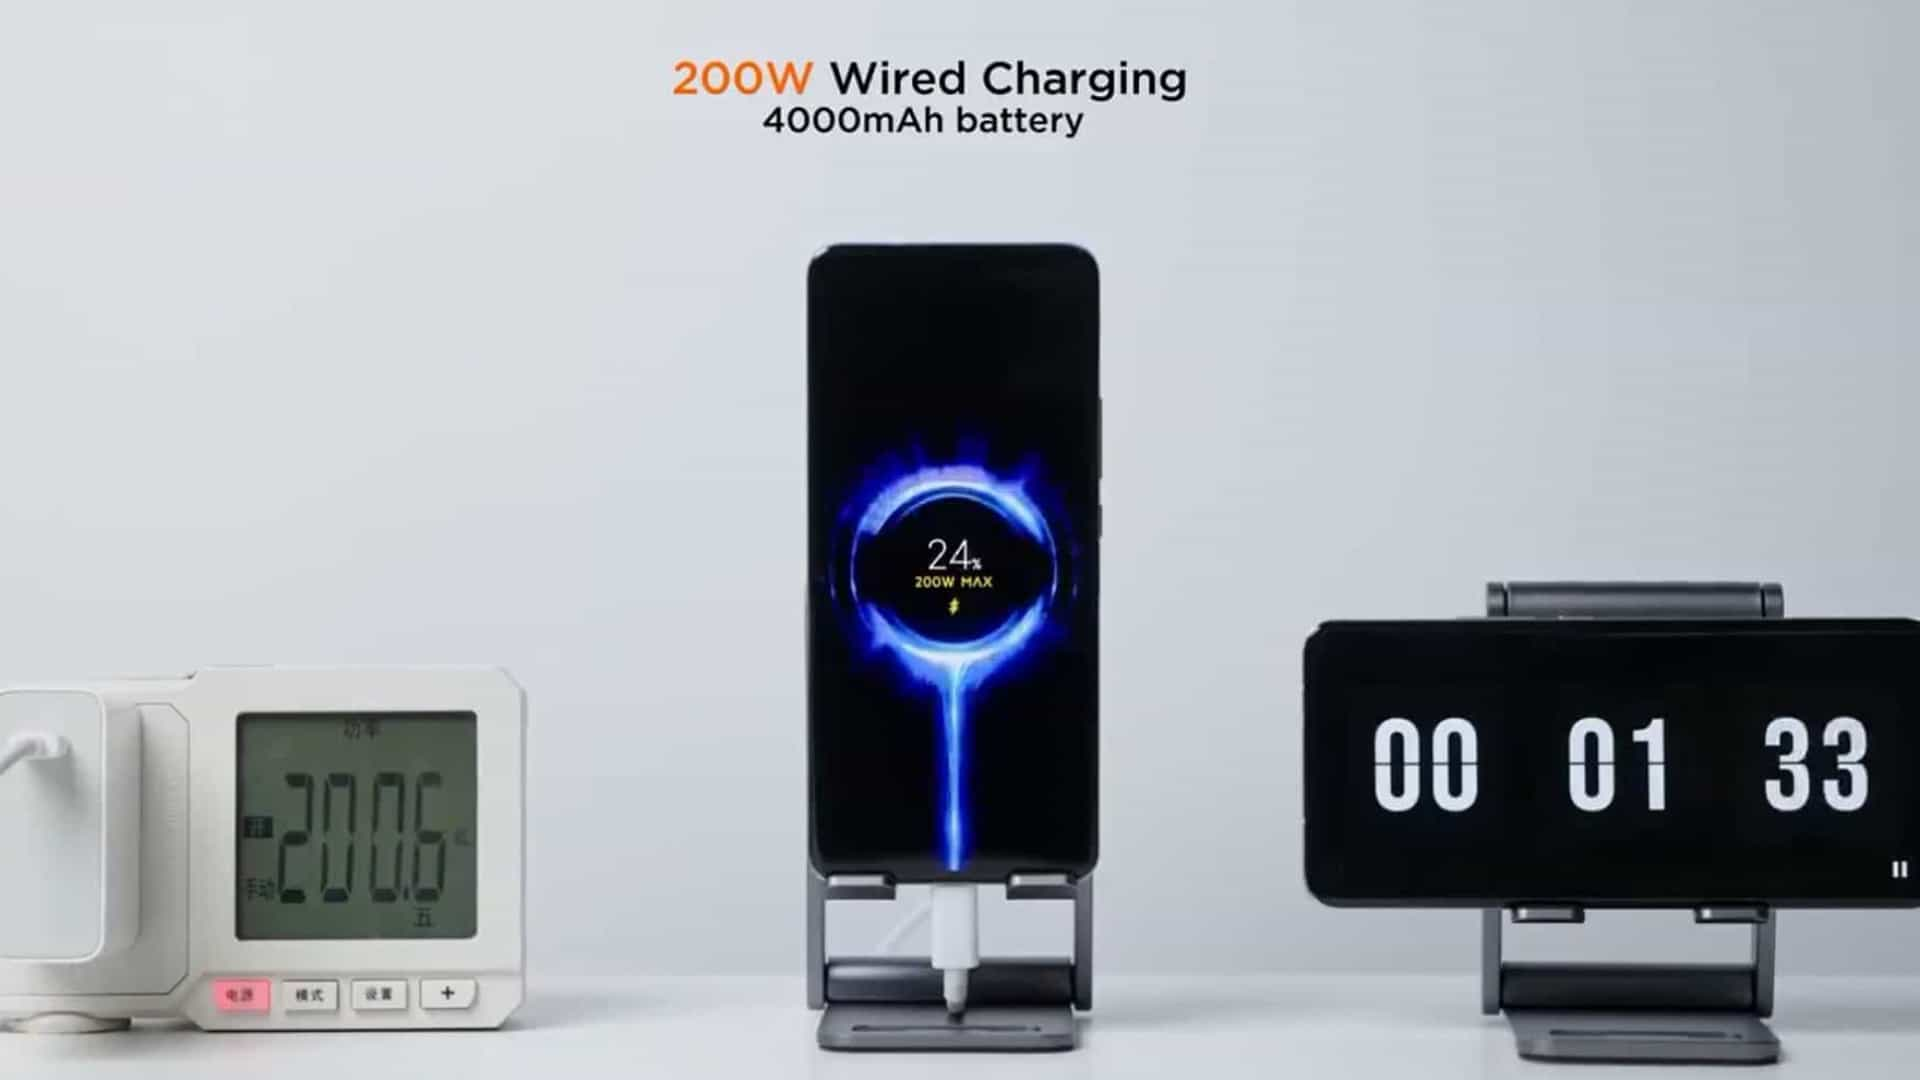 Xiaomi managed to fully recharge a mobile phone in 8 minutes